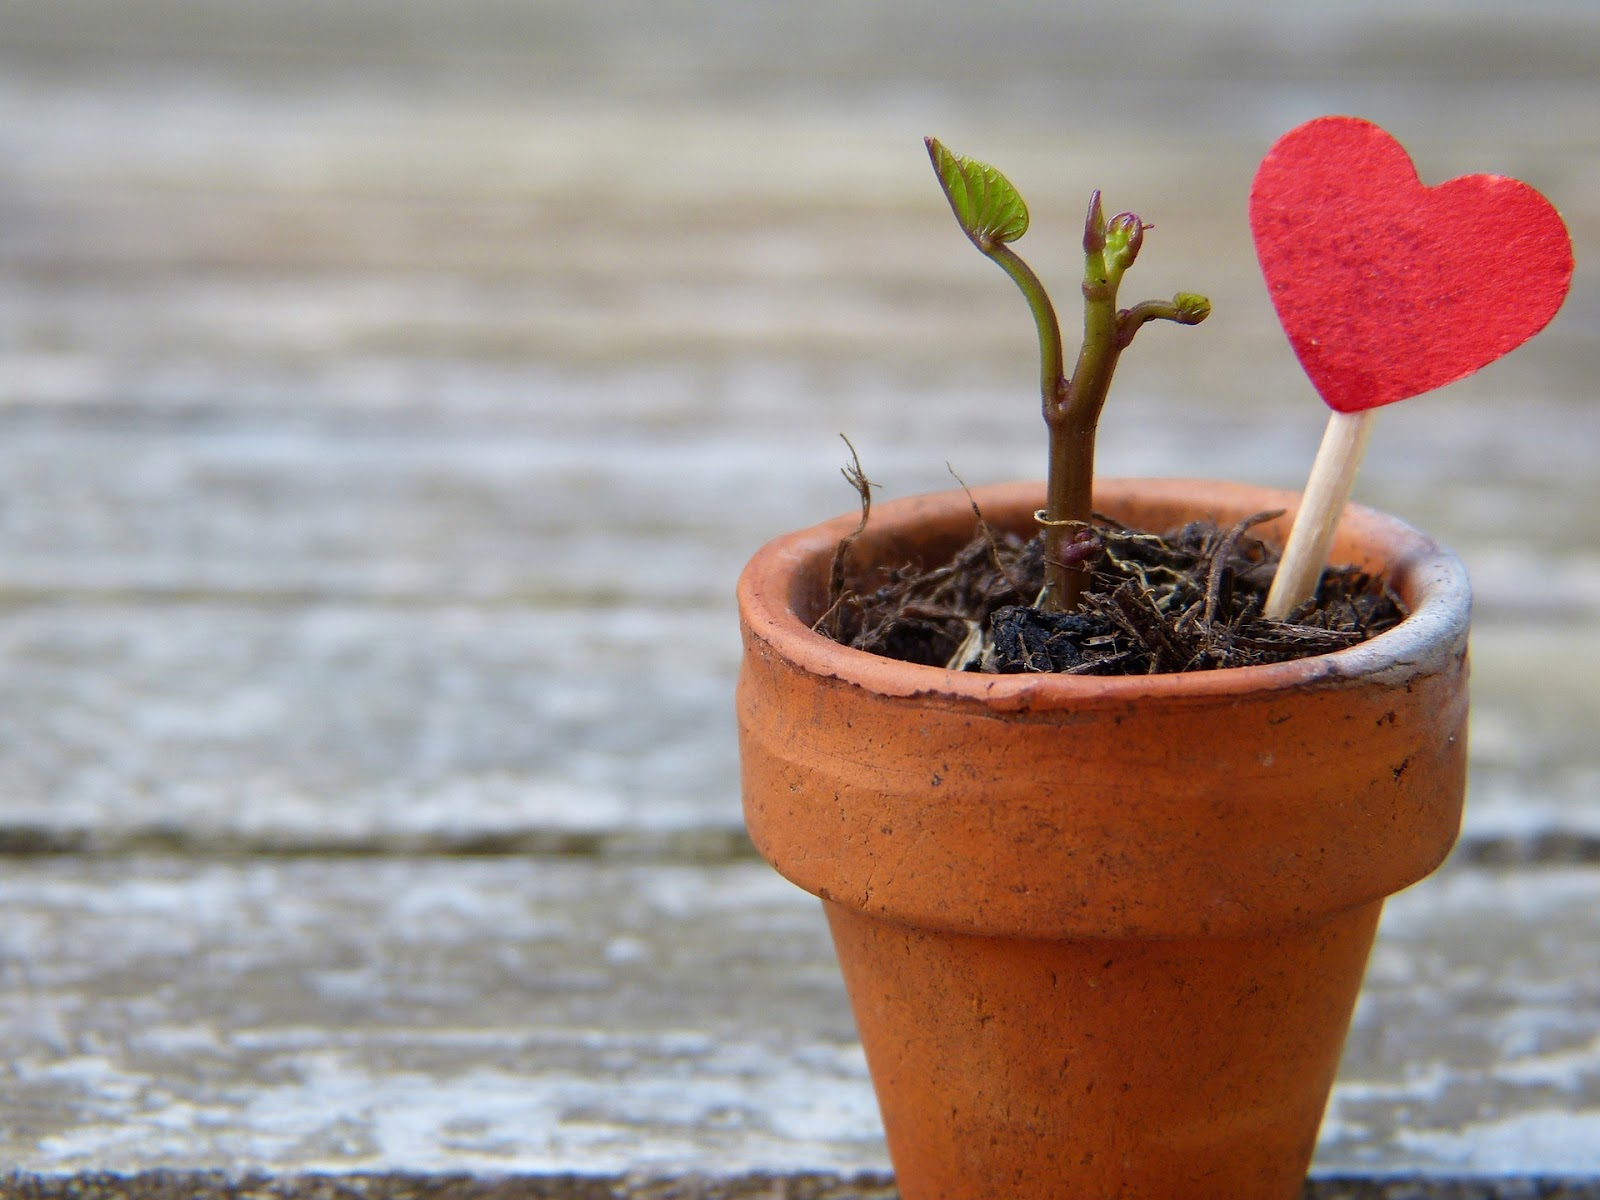 Tiny plant in pot with heart